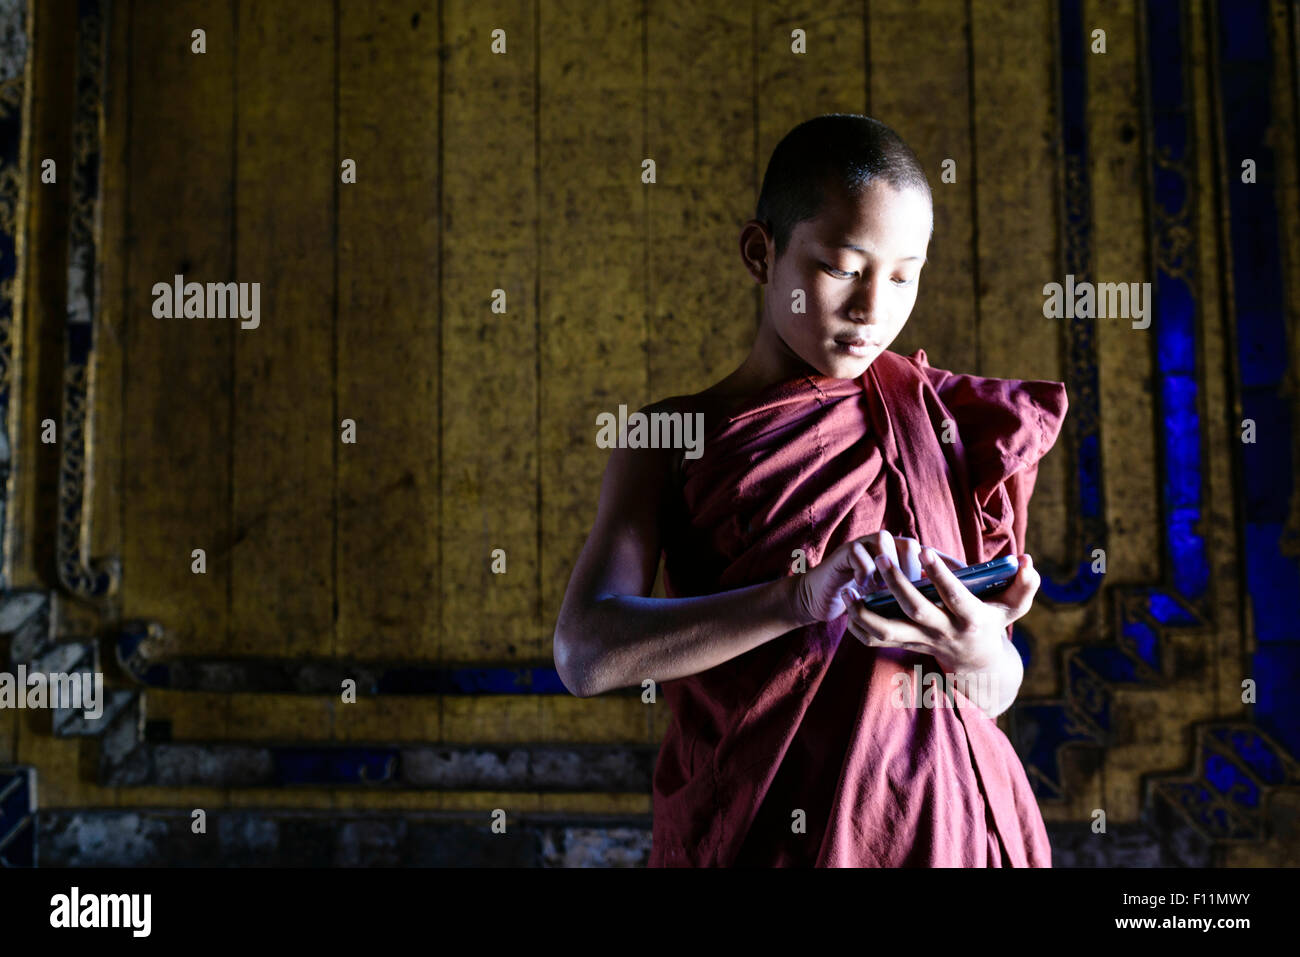 Asian monk-in-training using cell phone in temple - Stock Image